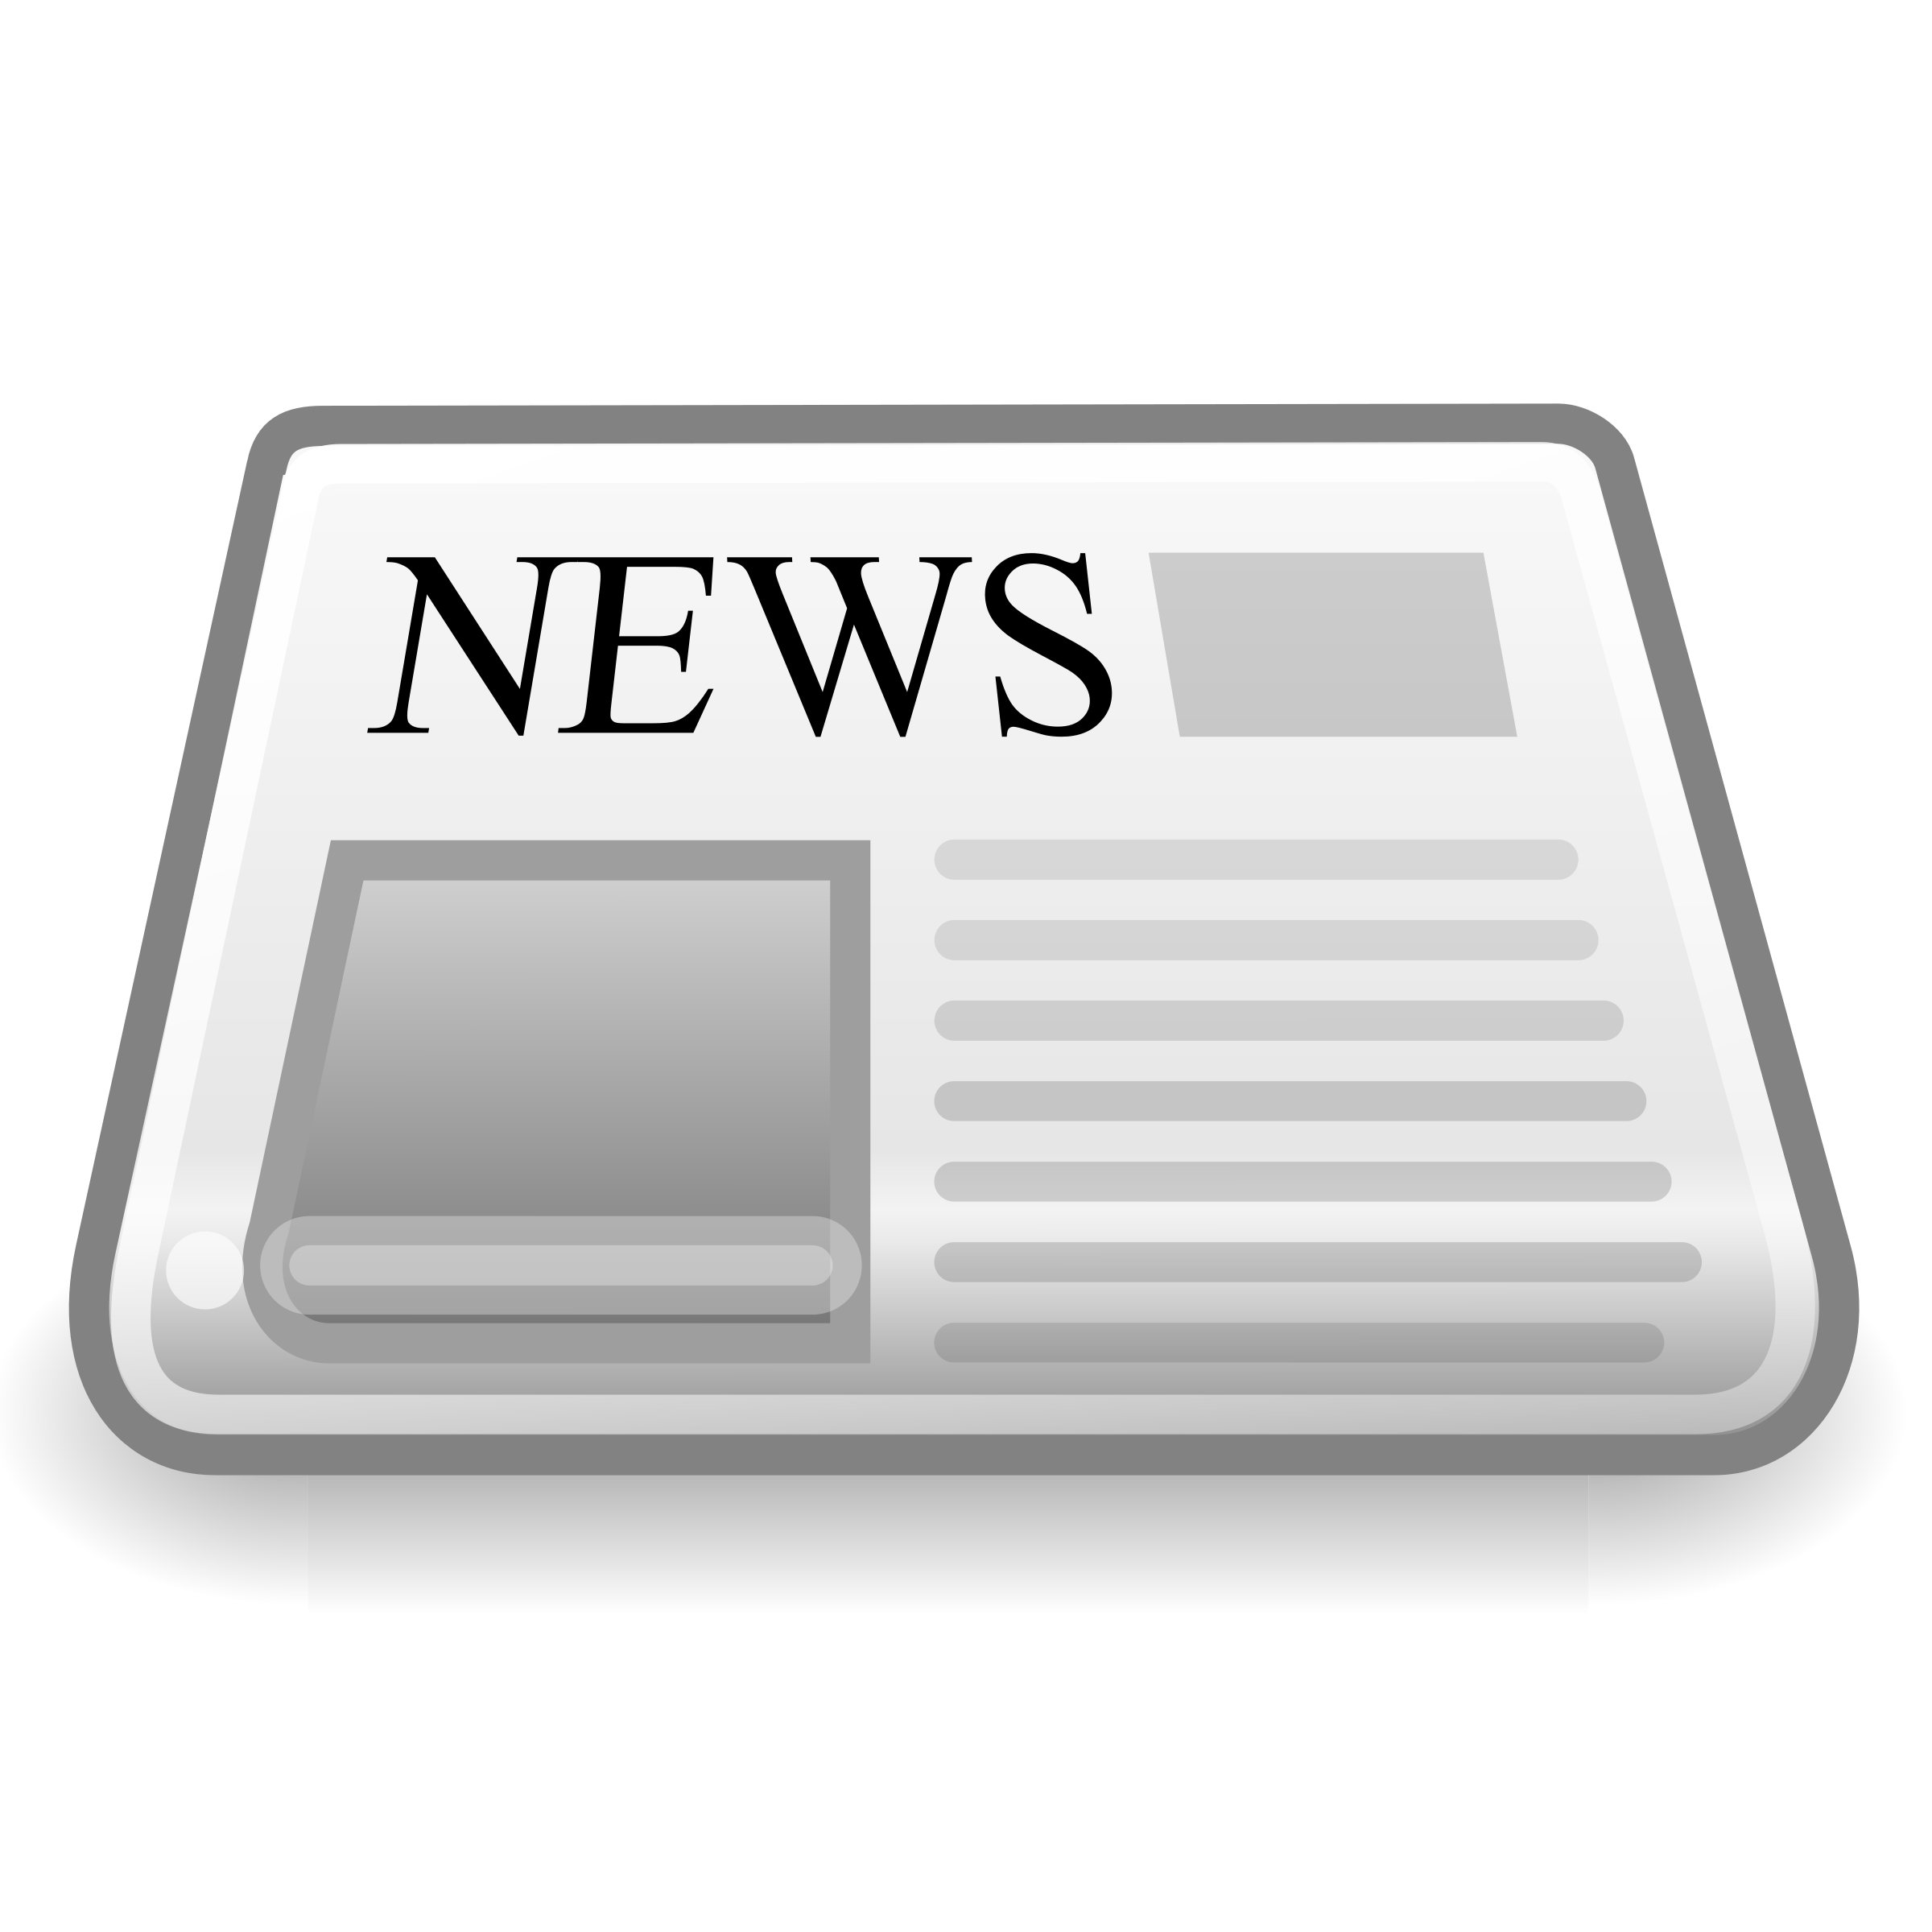 Clipart - News Paper Icon